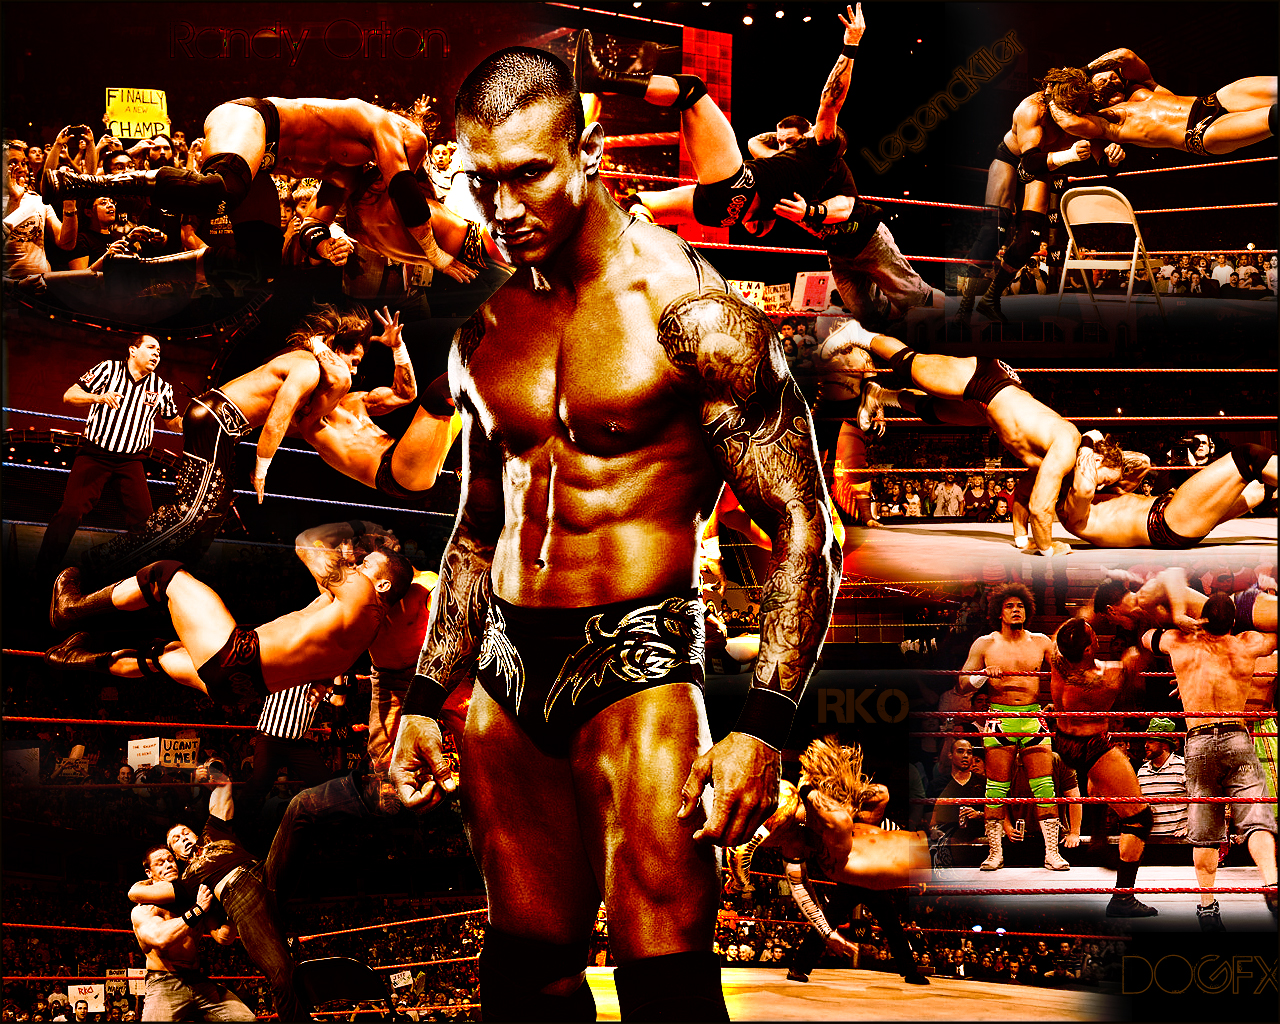 wwe Randy Orton Wallpapers 2011 Wrestling Stars 1280x1024